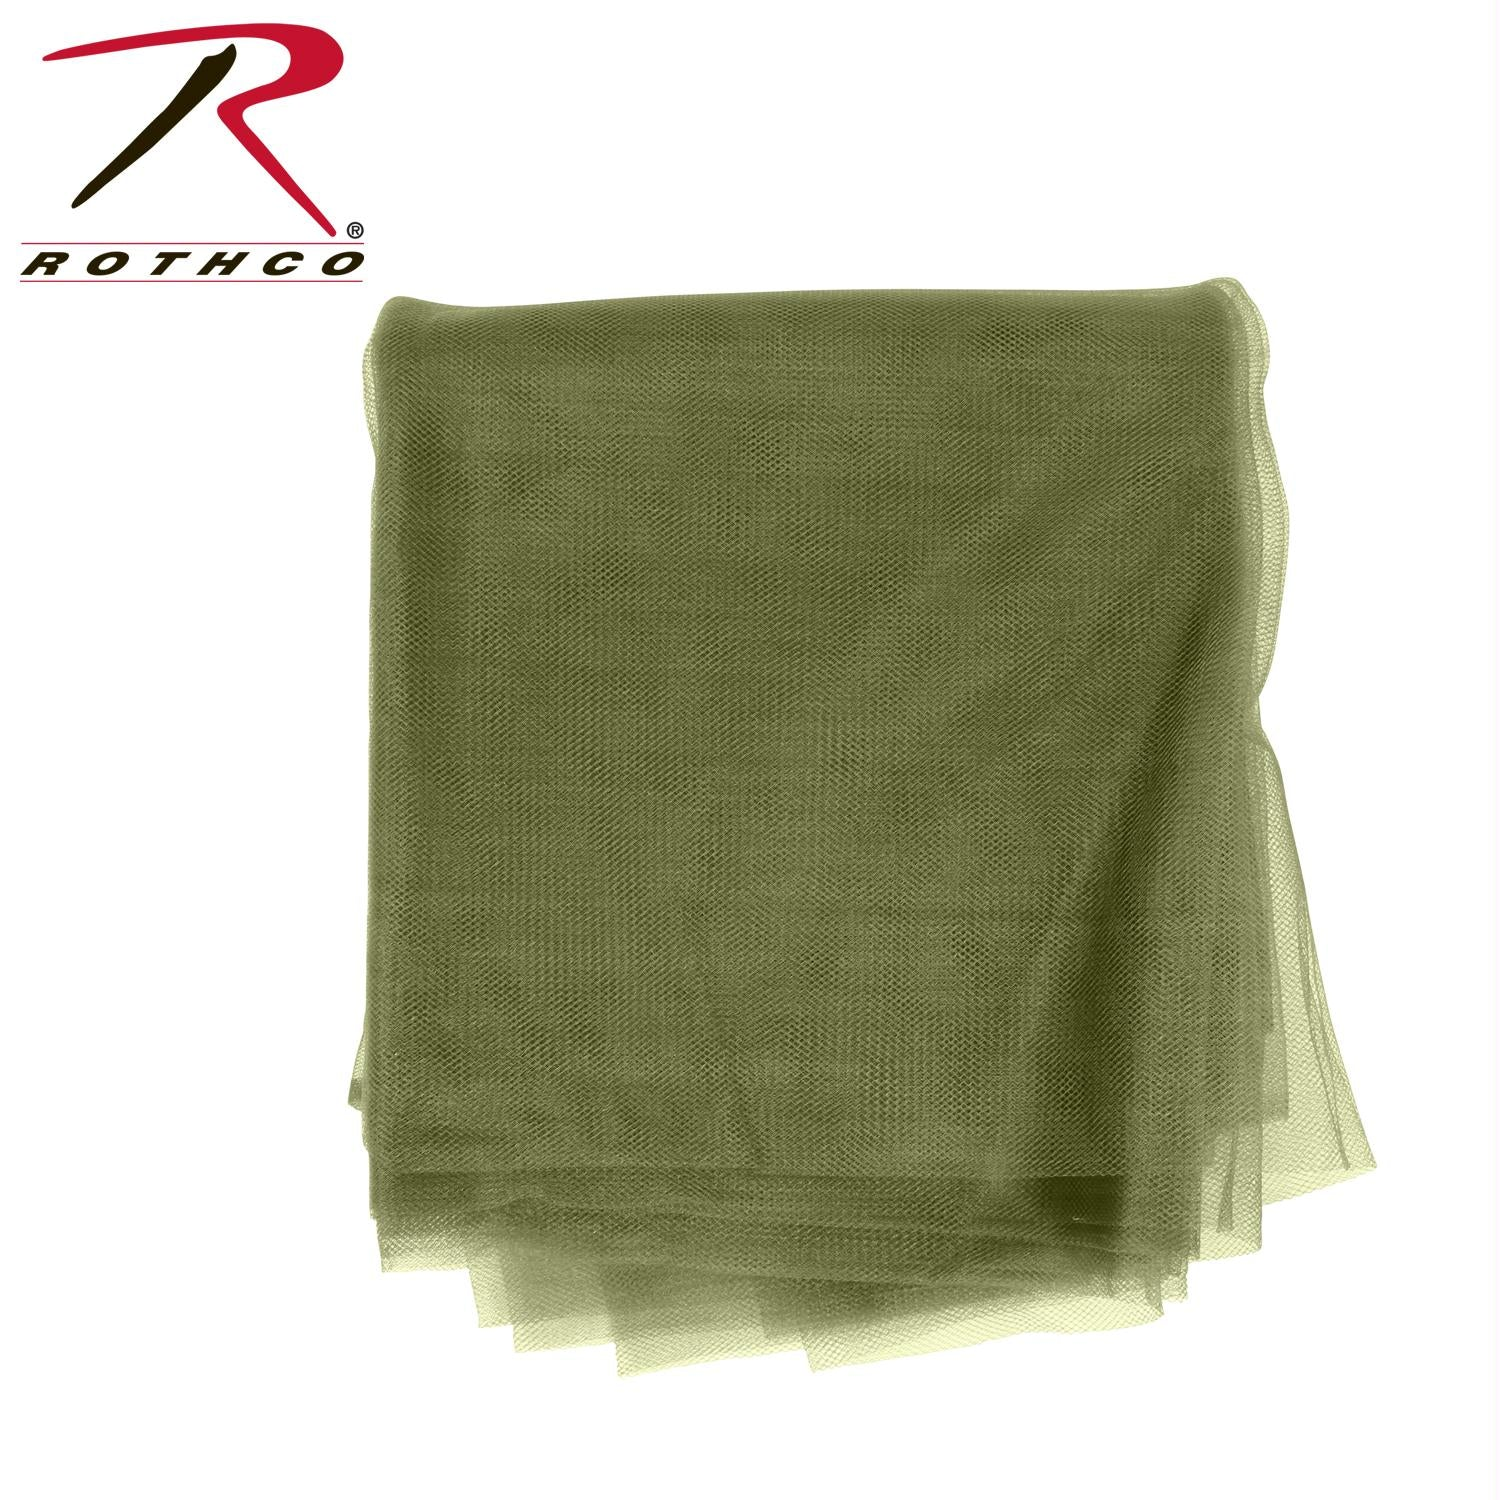 Rothco G.I. Type Rolled Mosquito Netting - Olive Drab